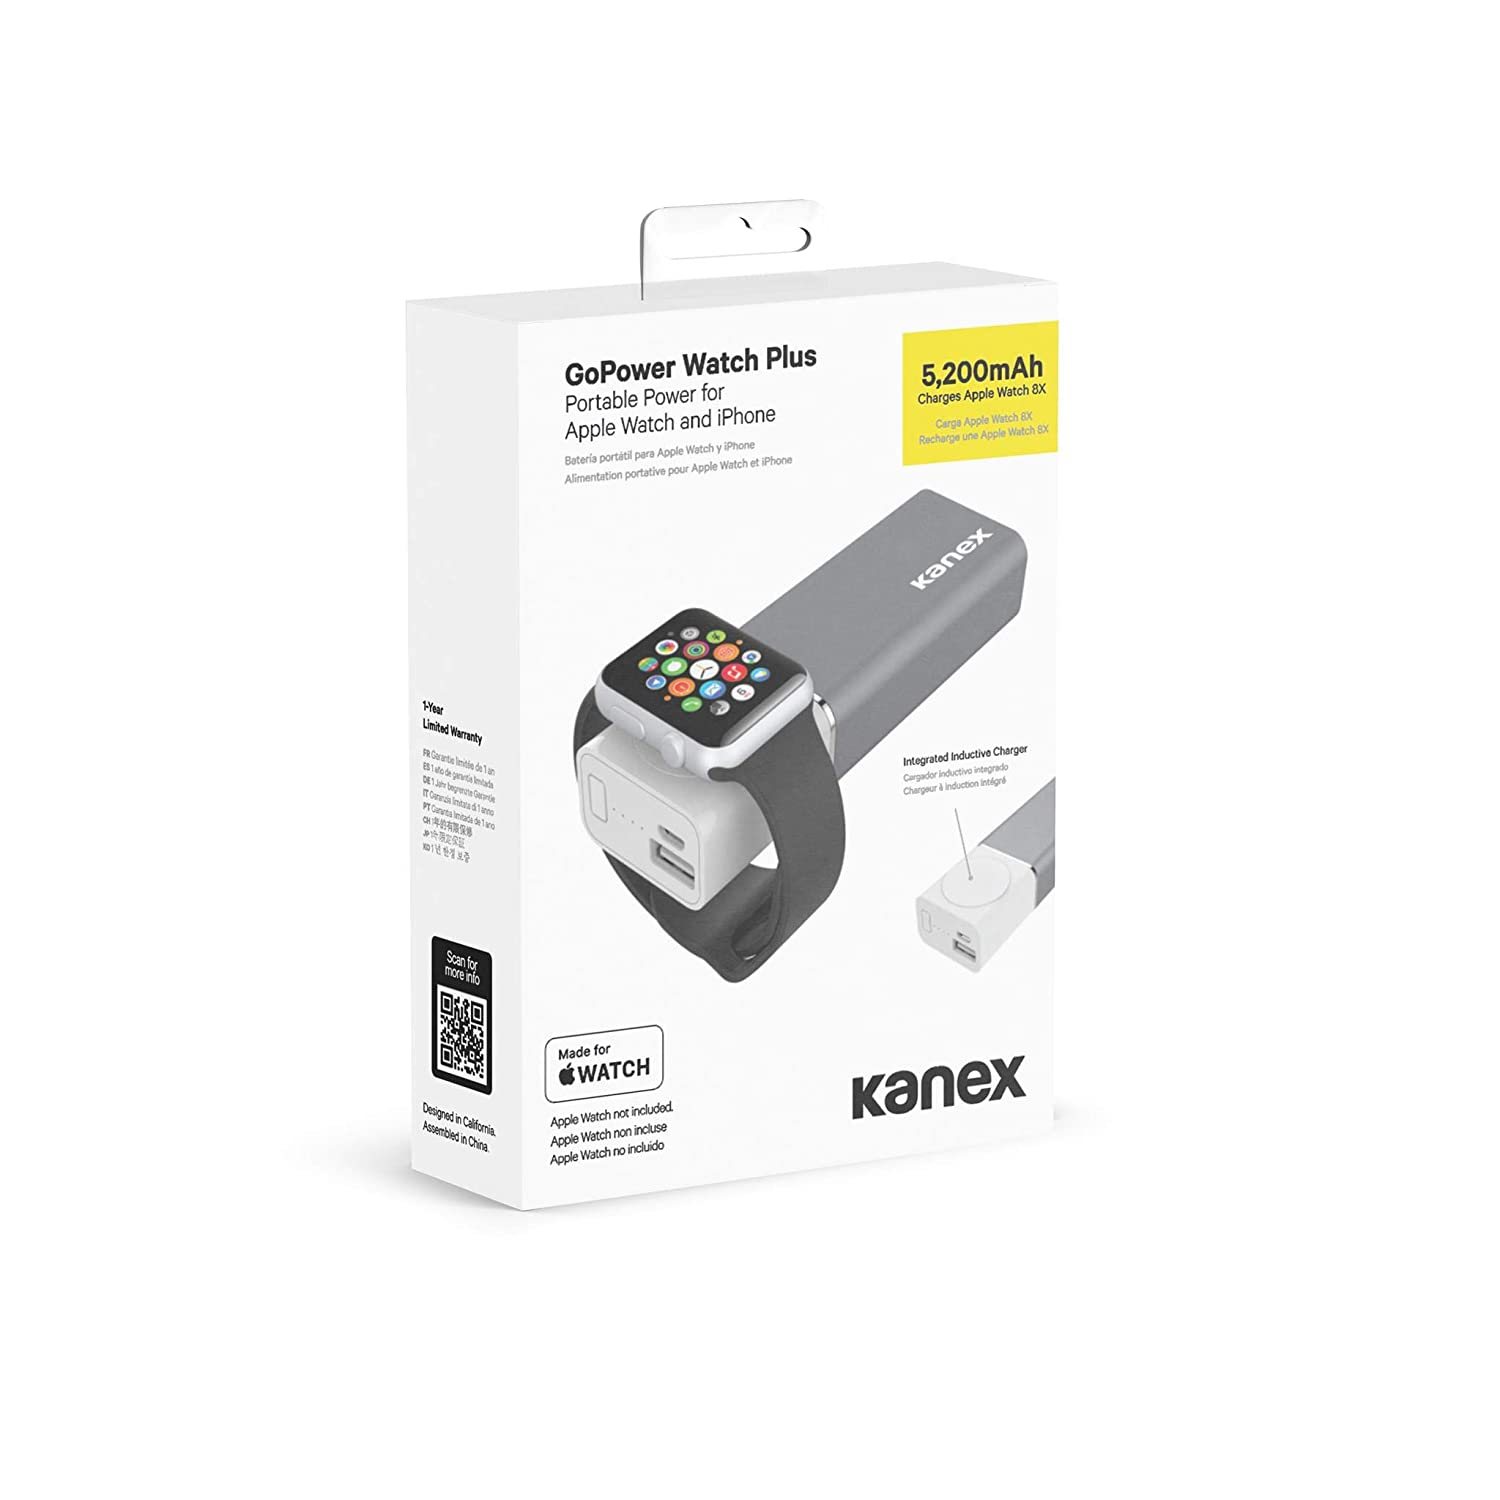 Amazon.com: Kanex GoPower Watch Plus, Portable Battery for Apple Watch and iPhone, 5200mAh: Cell Phones & Accessories